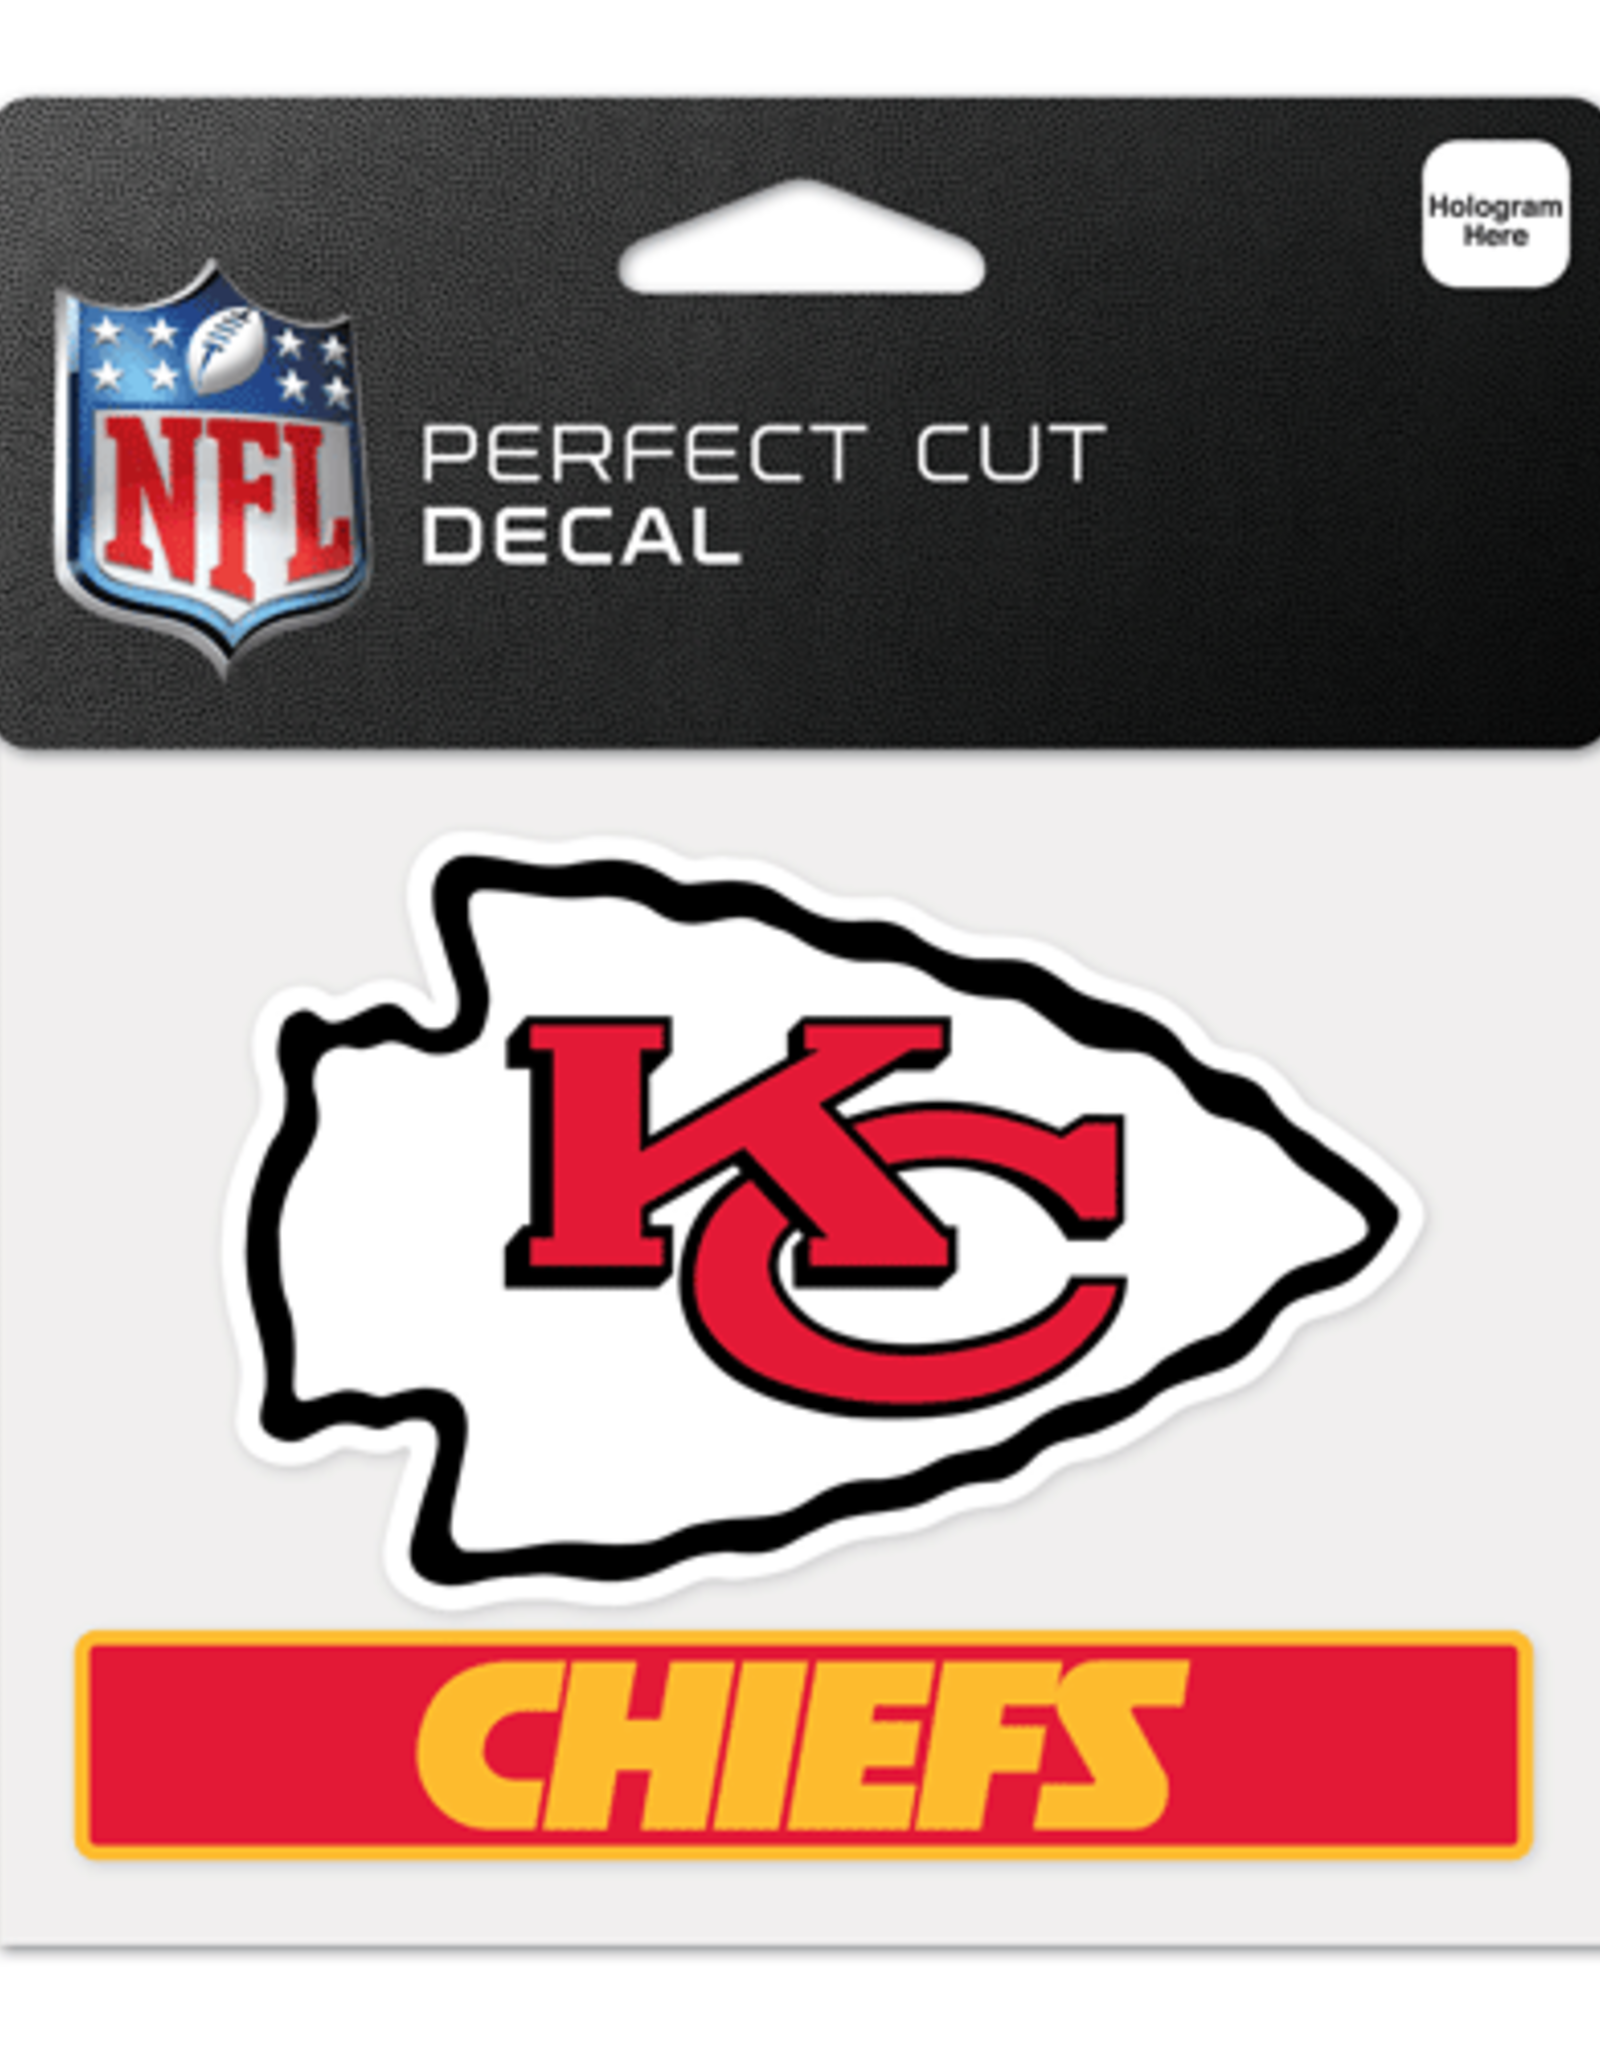 Chiefs Kansas SB54 Champions Precision Cut Decal